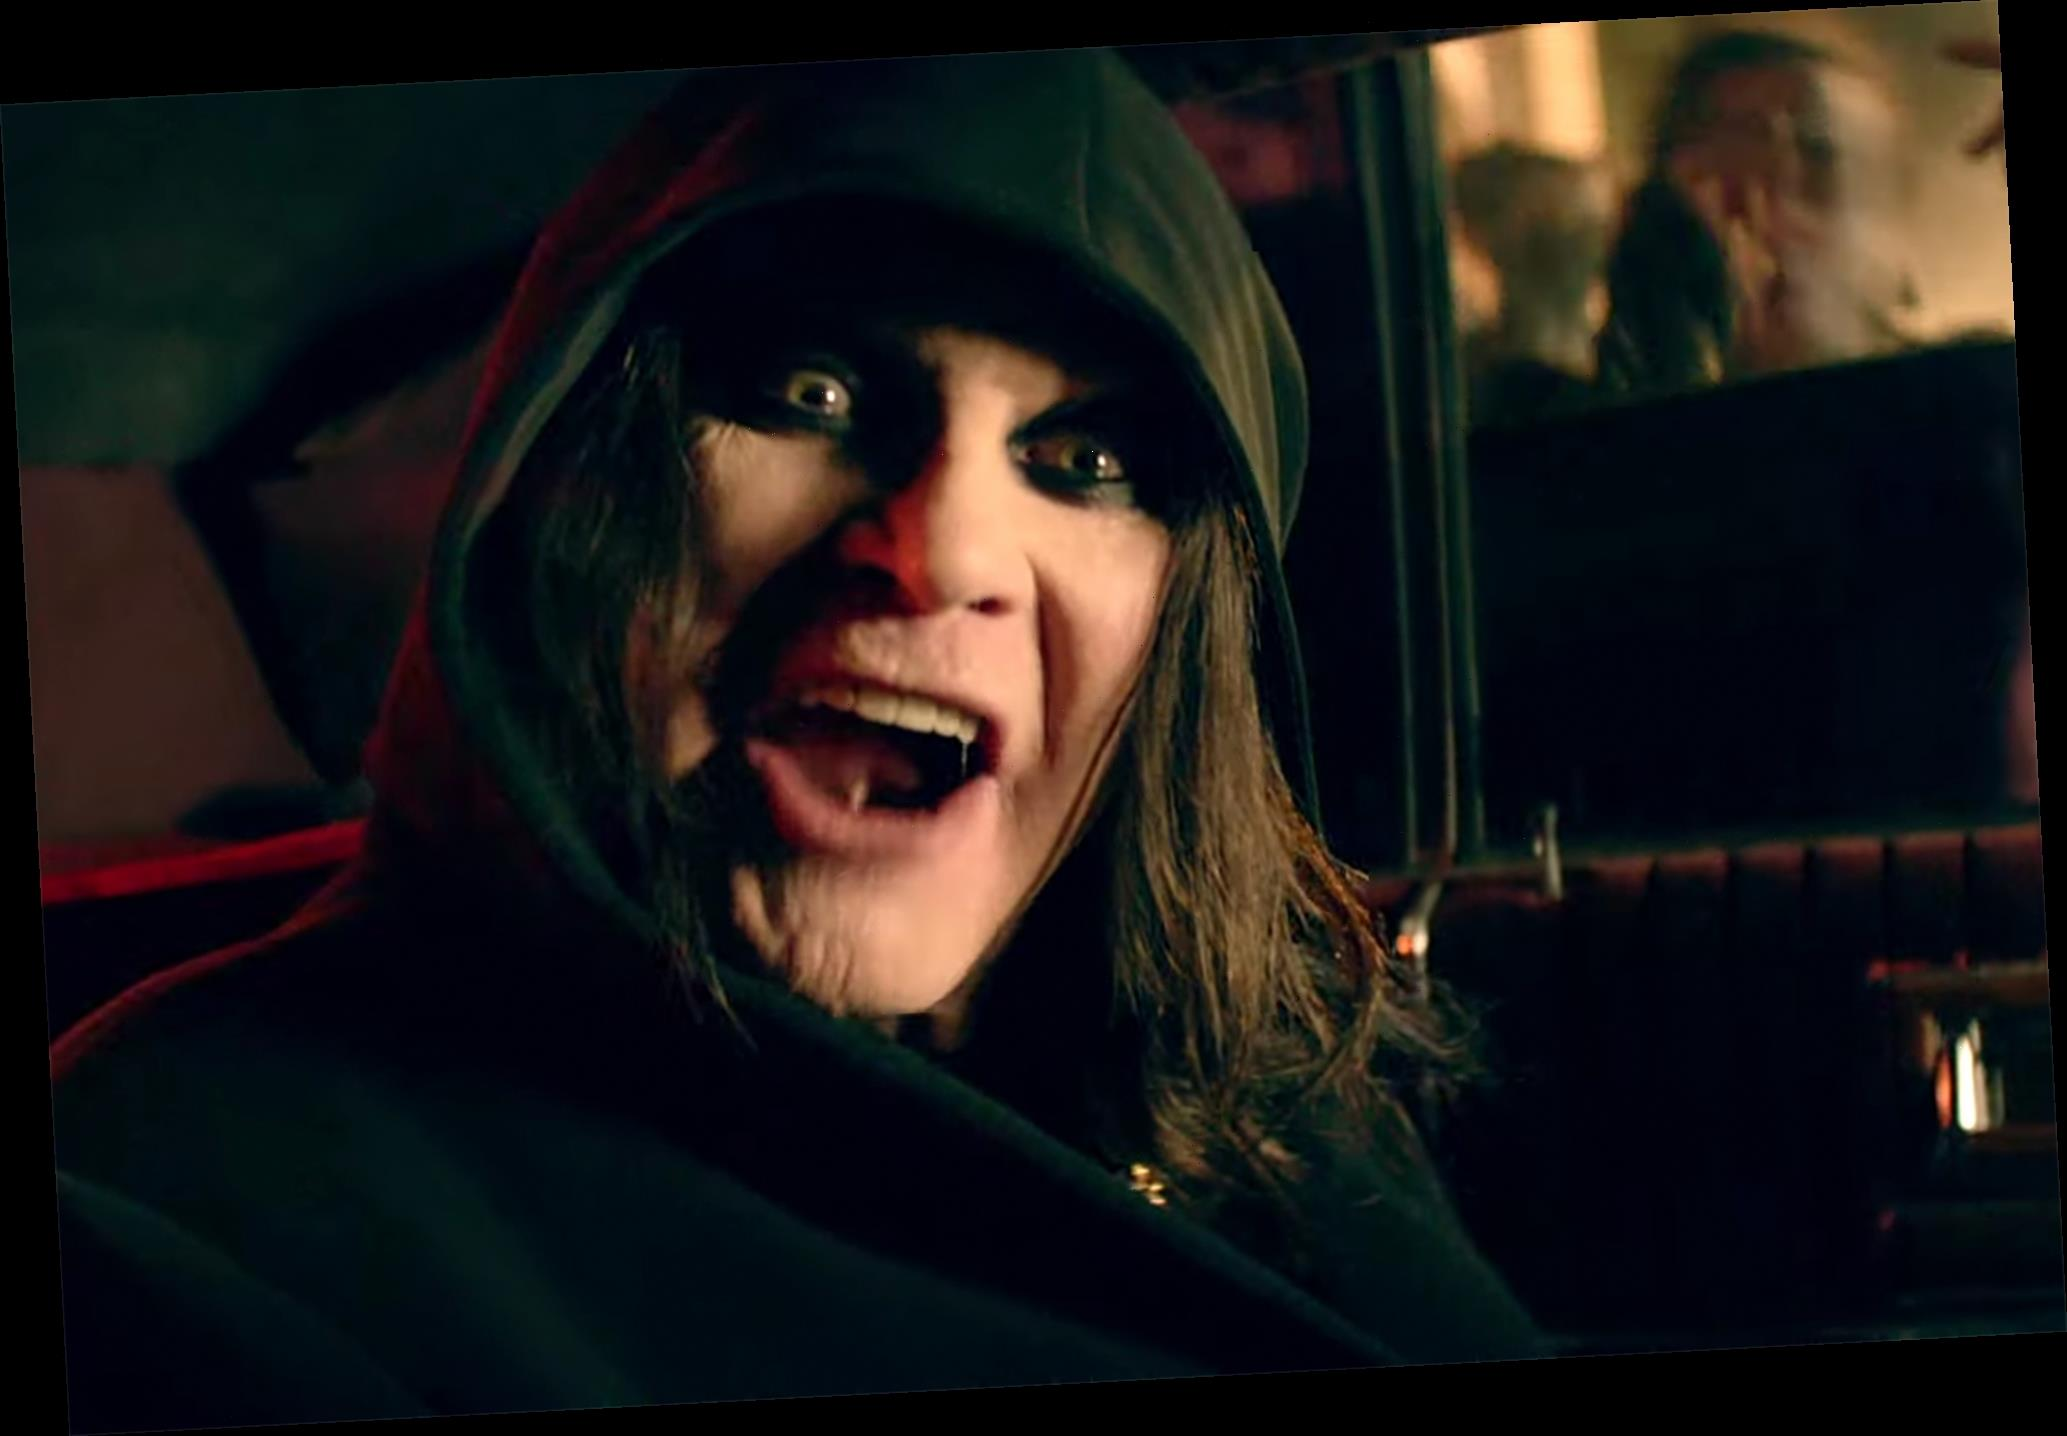 Ozzy Osbourne Leads a Raucous Riot in 'Straight to Hell' Video